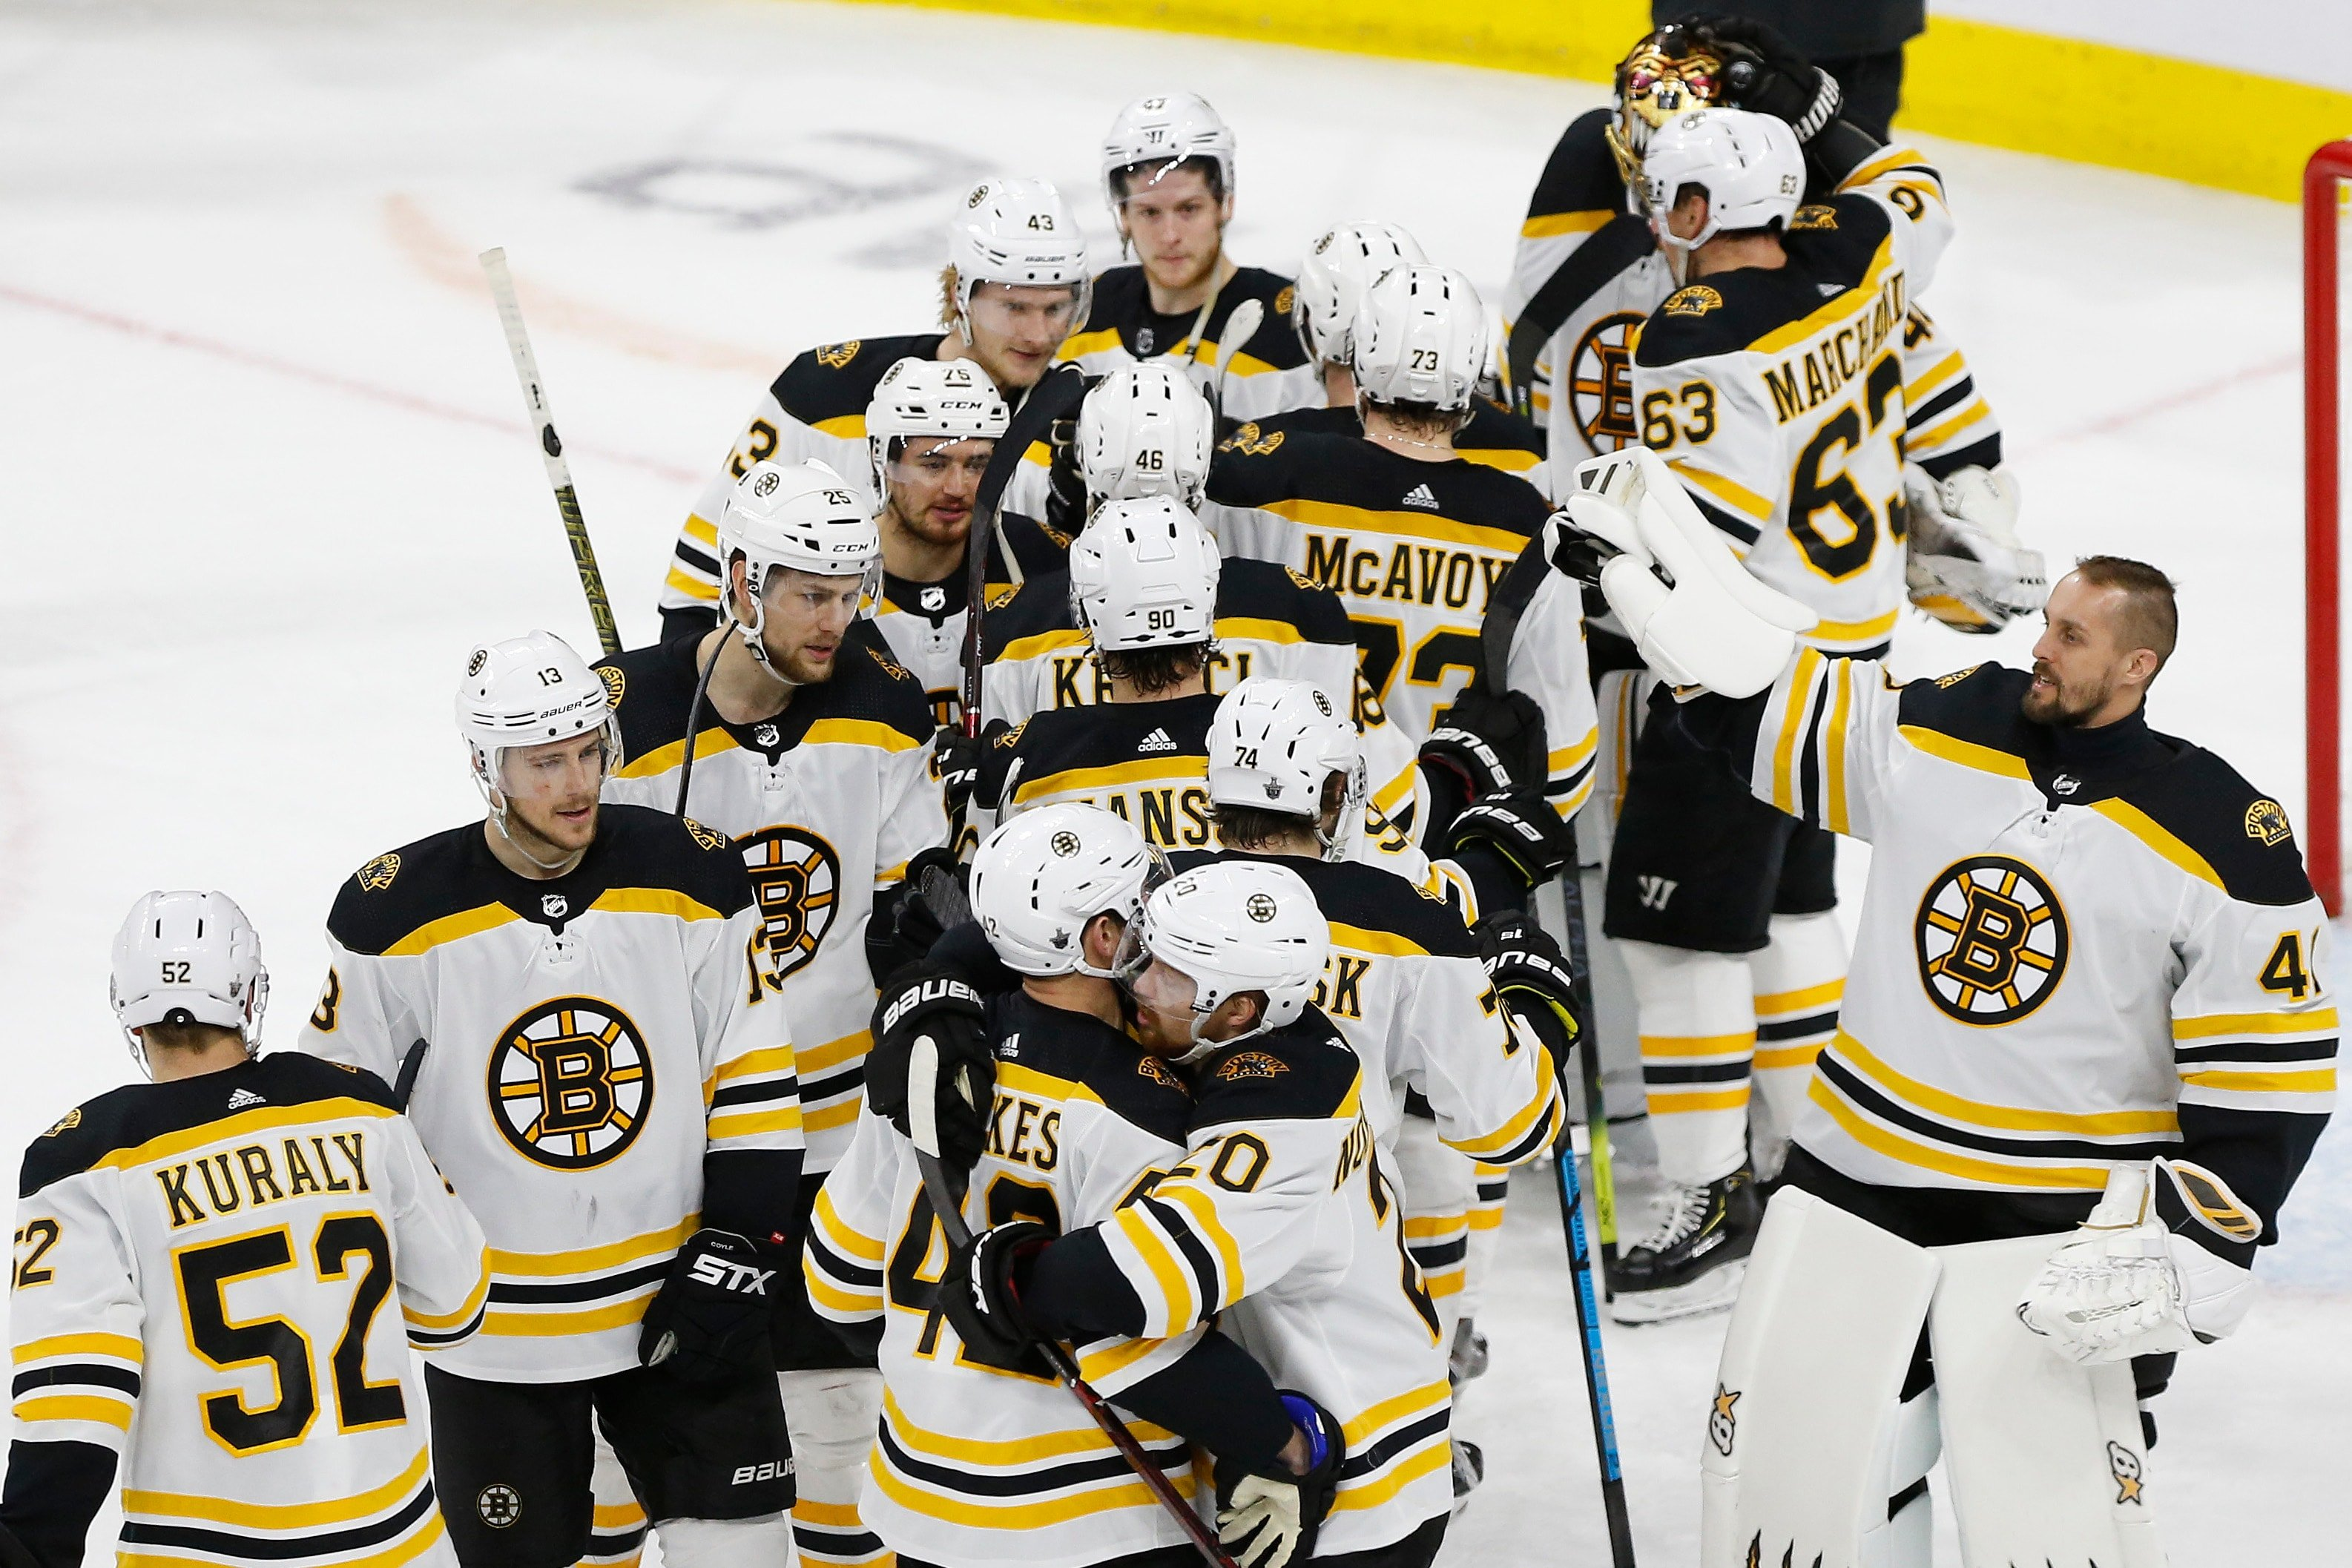 Torey Krug All Smiles After Bruins' Game 4 Win Vs. Hurricanes